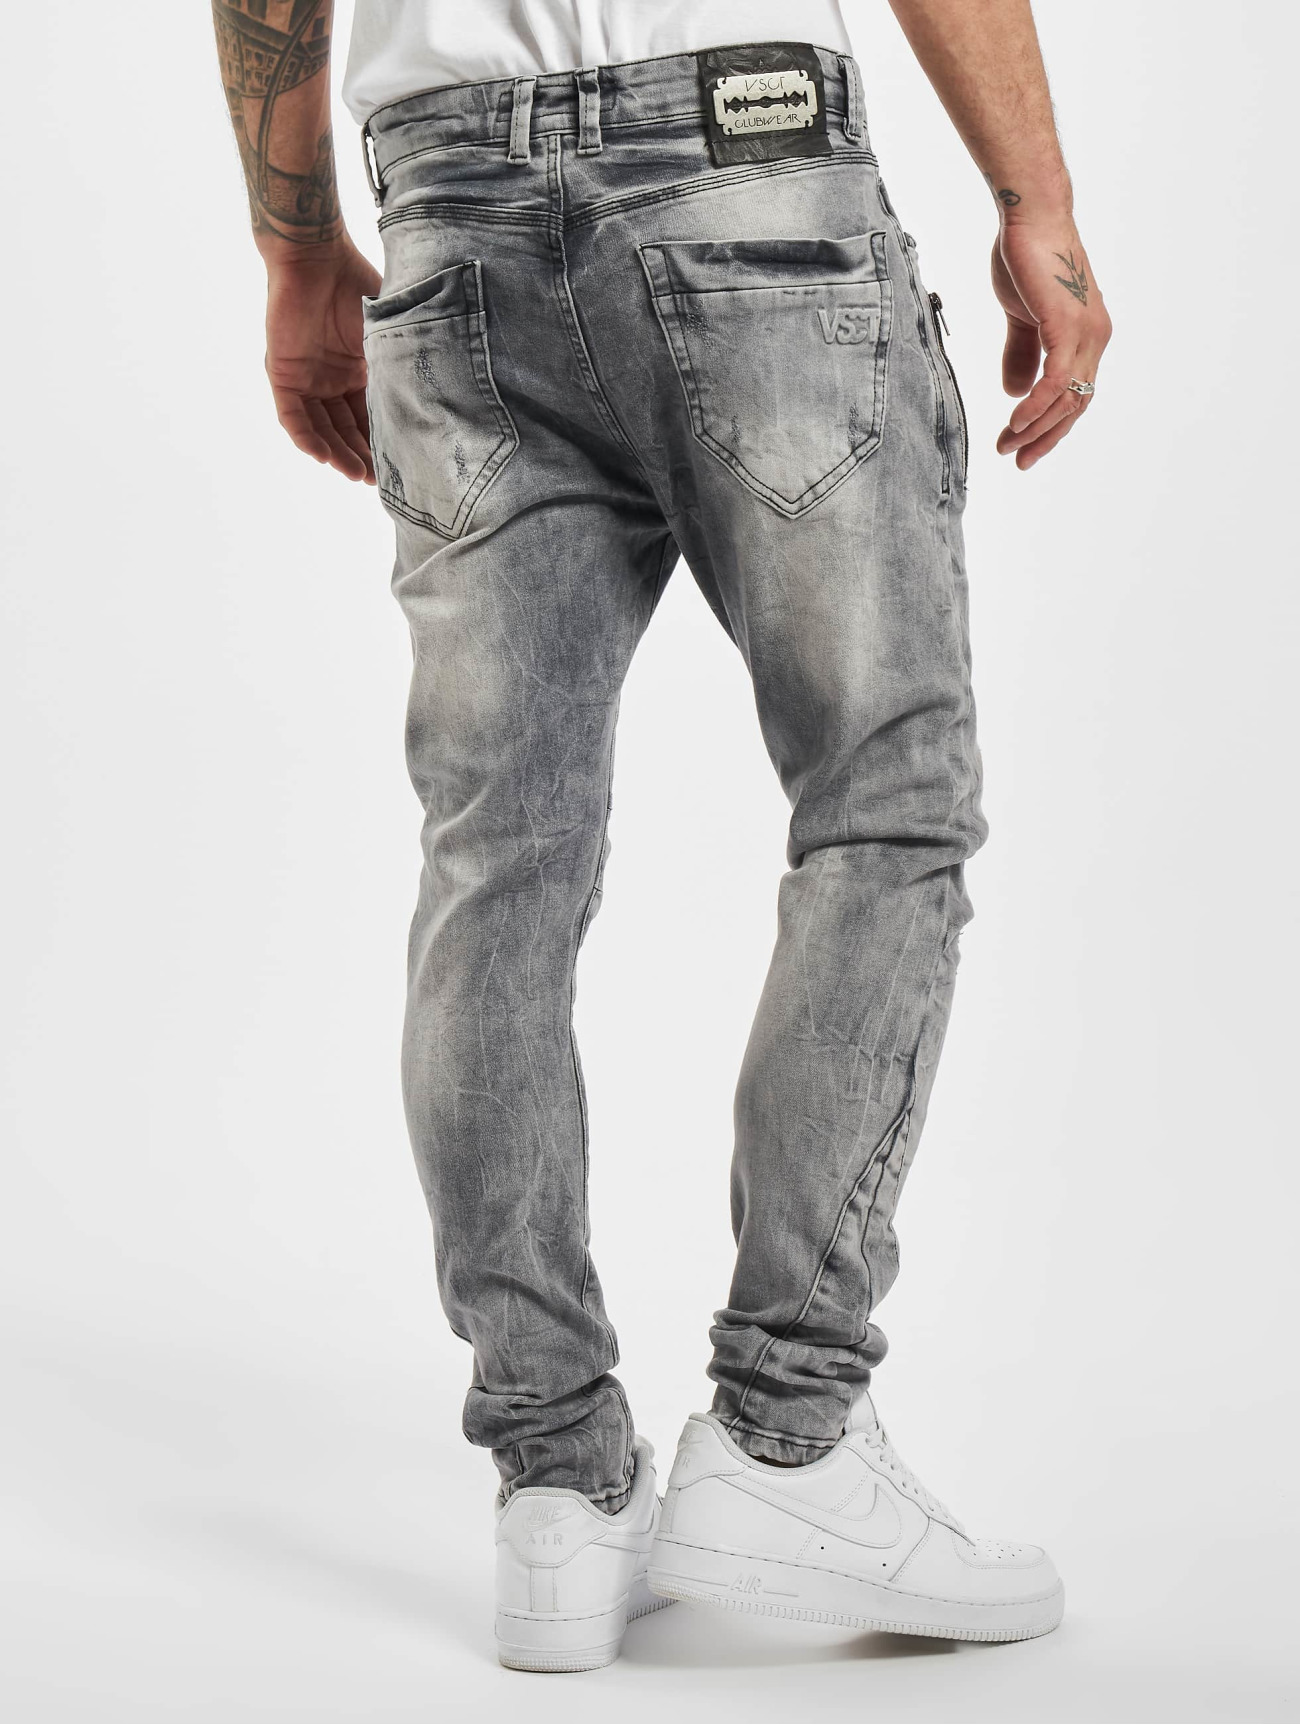 VSCT Clubwear  Thor Slim 7P With Zips  gris Homme Jean slim  723159 Homme Jeans